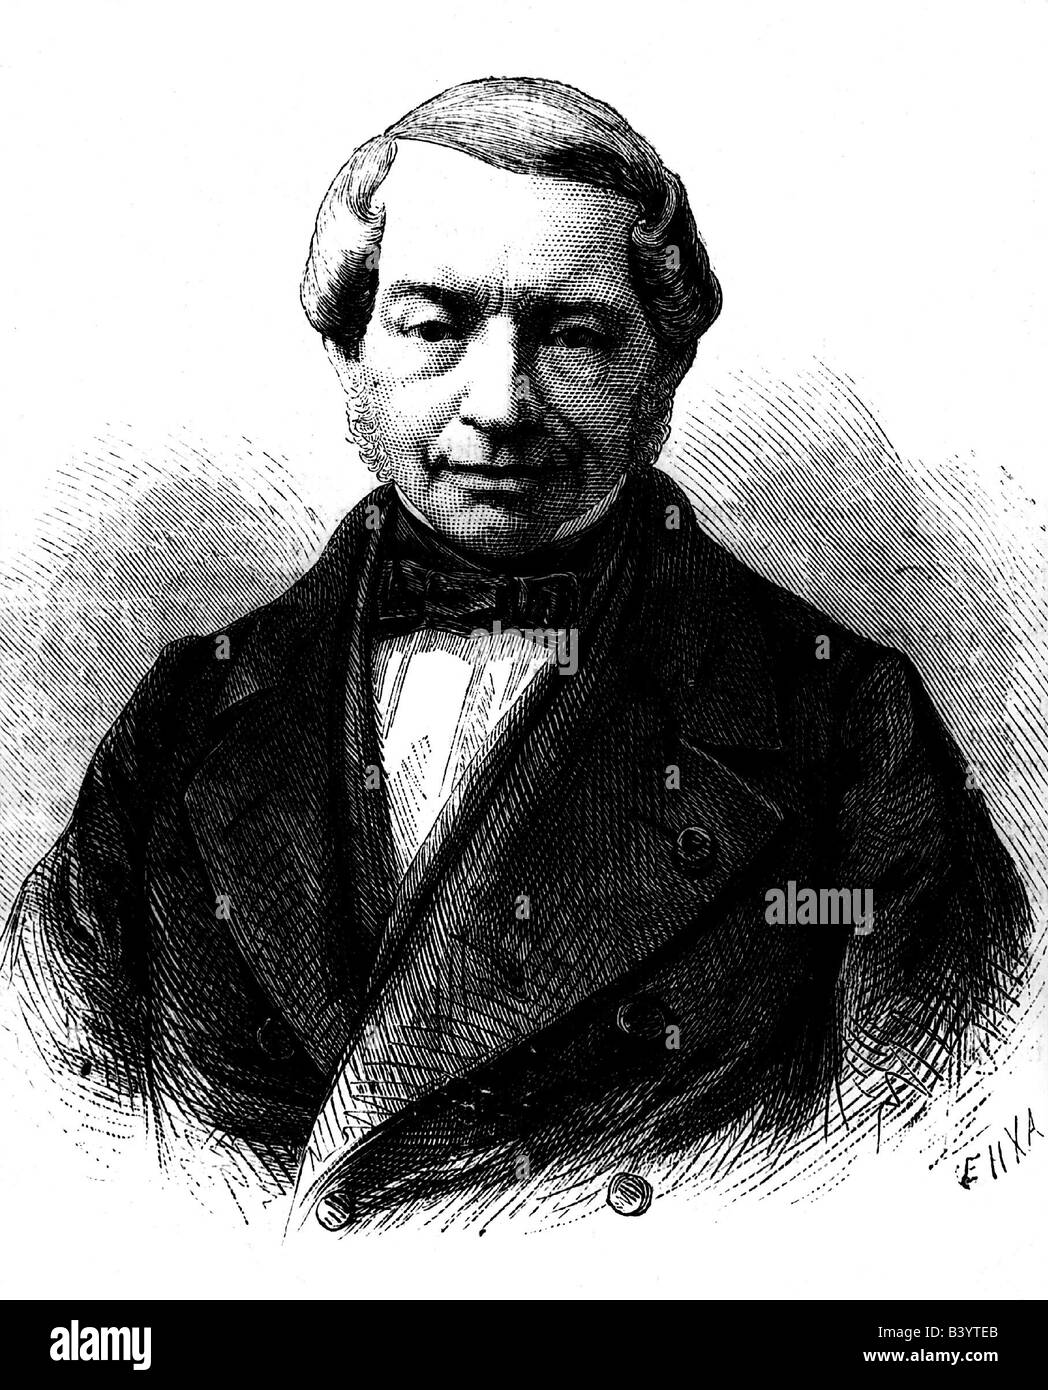 Rothschild, Jakob, 15.5.1792 - 15.11.1868, German banker, engraving after drawing by Kriehuber, 19th century, James - Stock Image